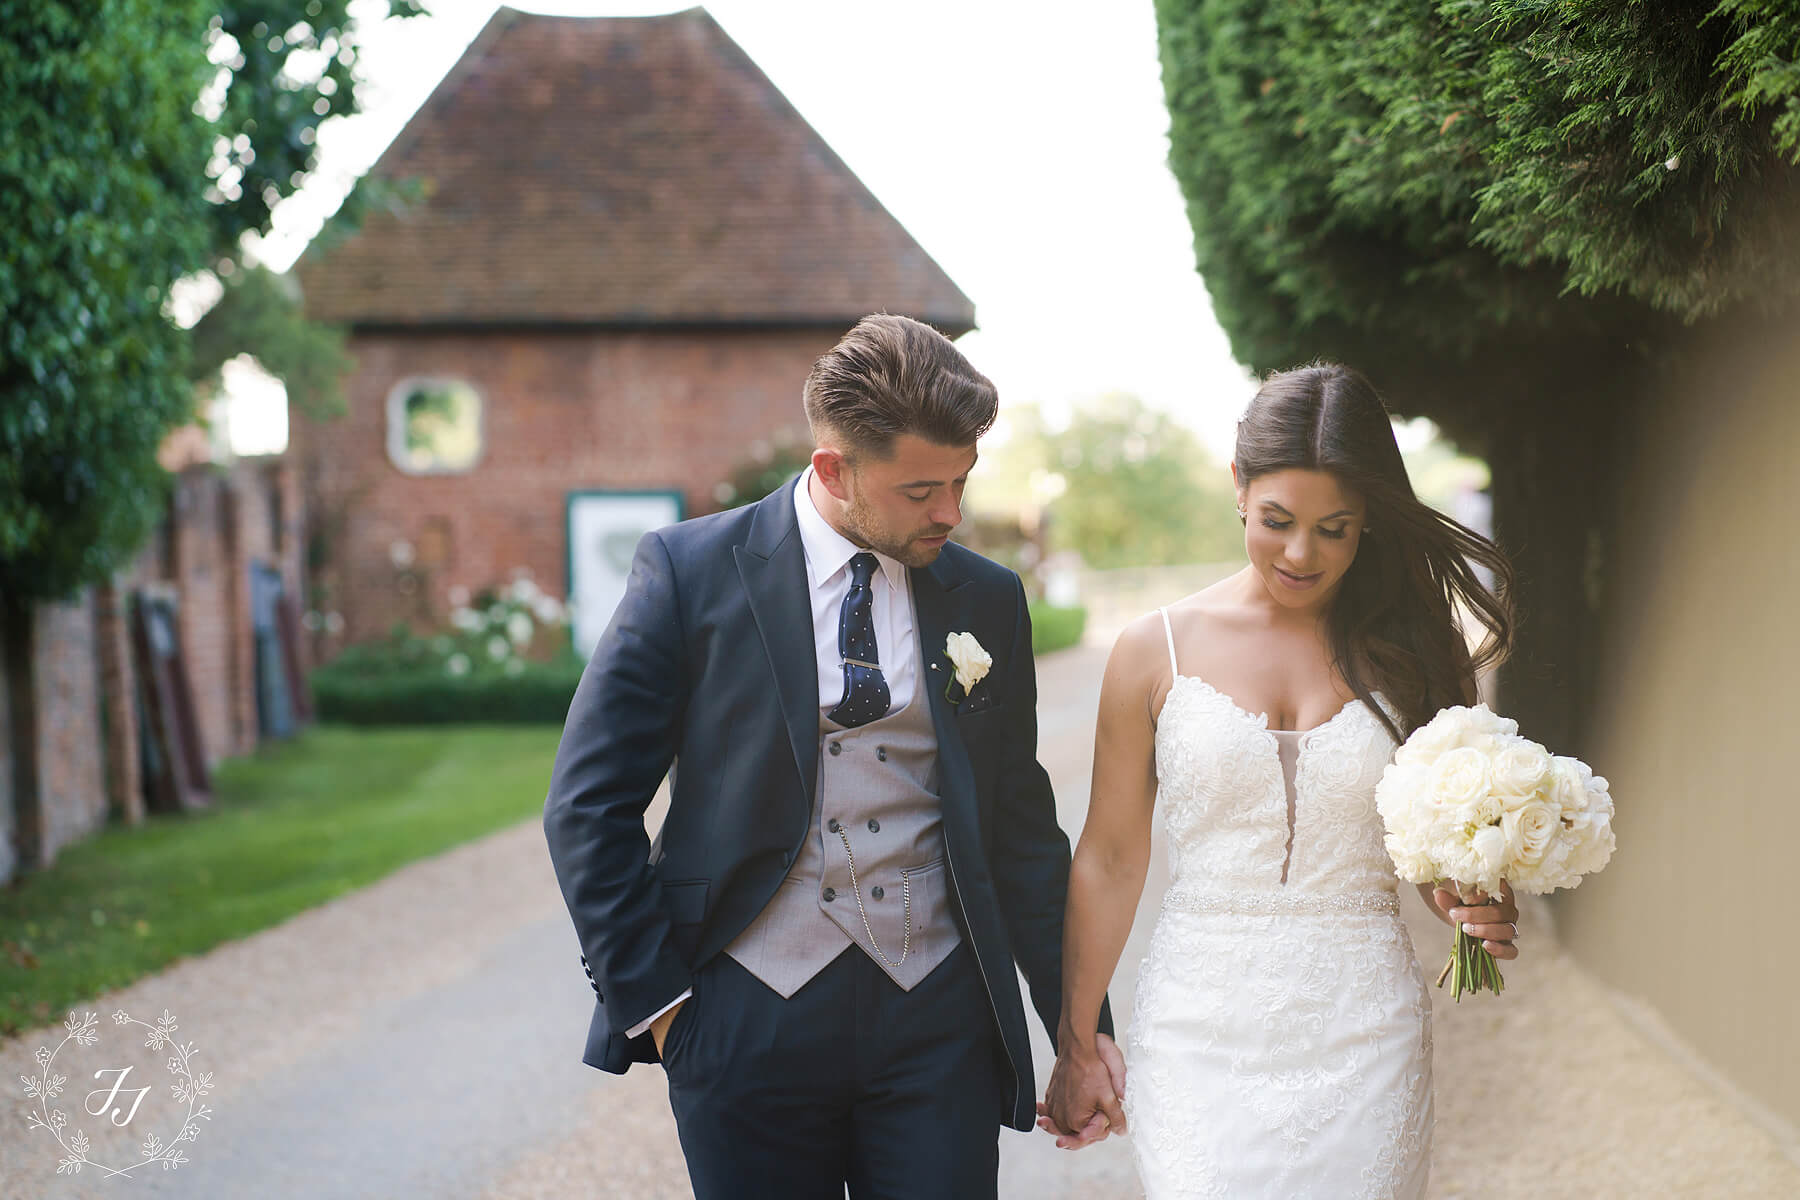 Samantha & Cameron's wedding photograph of them in front of the apple loft at Gaynes Park